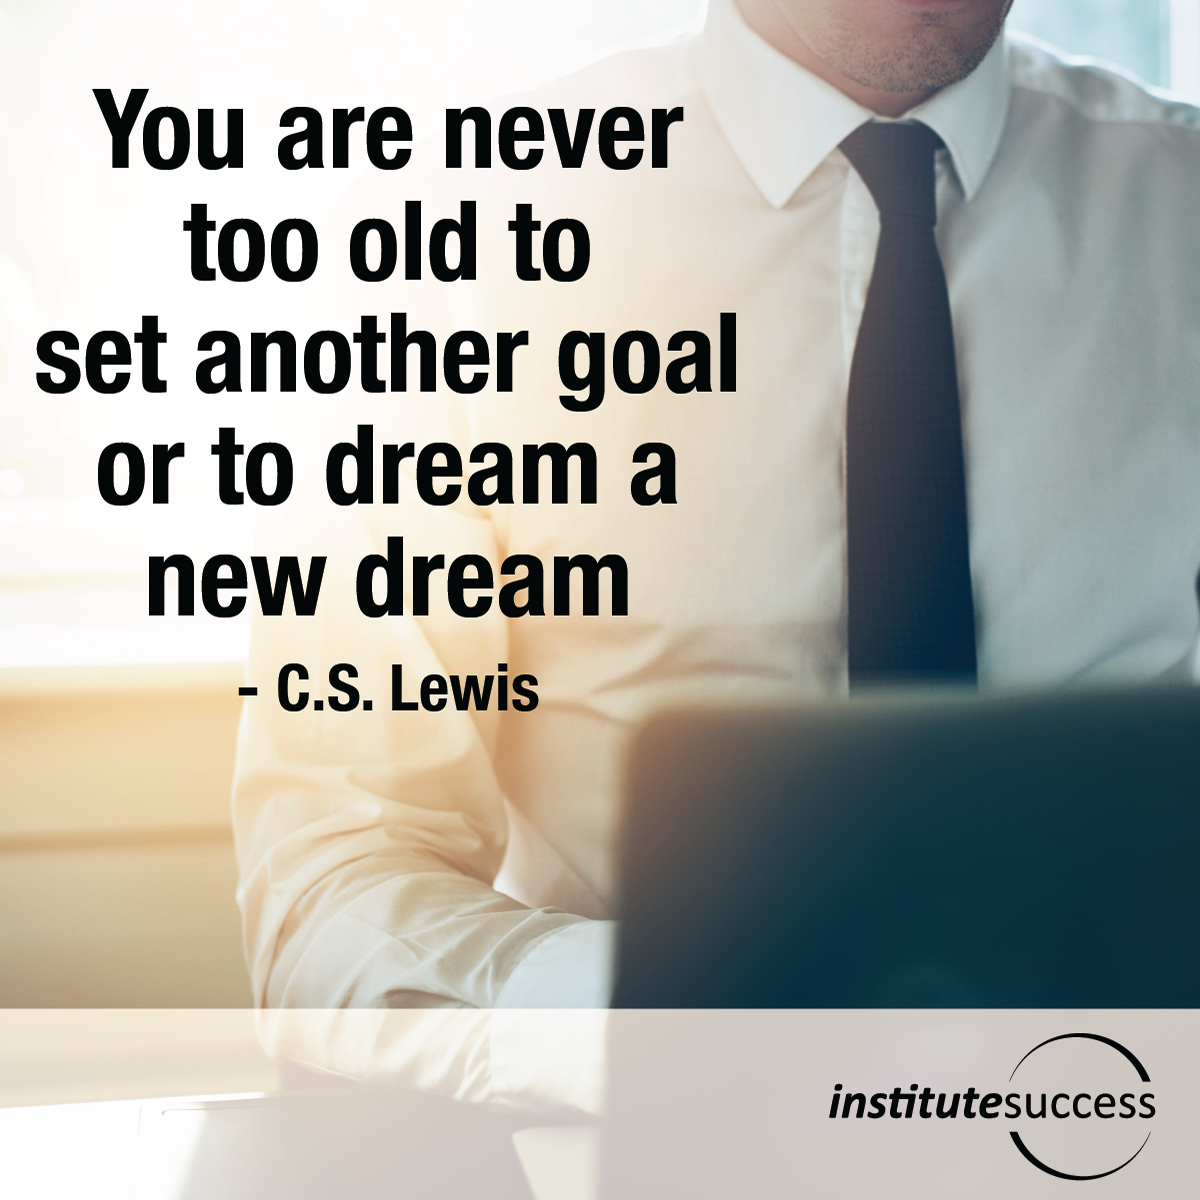 You are never too old to set another goal or to dream a new dream – C.S. Lewis